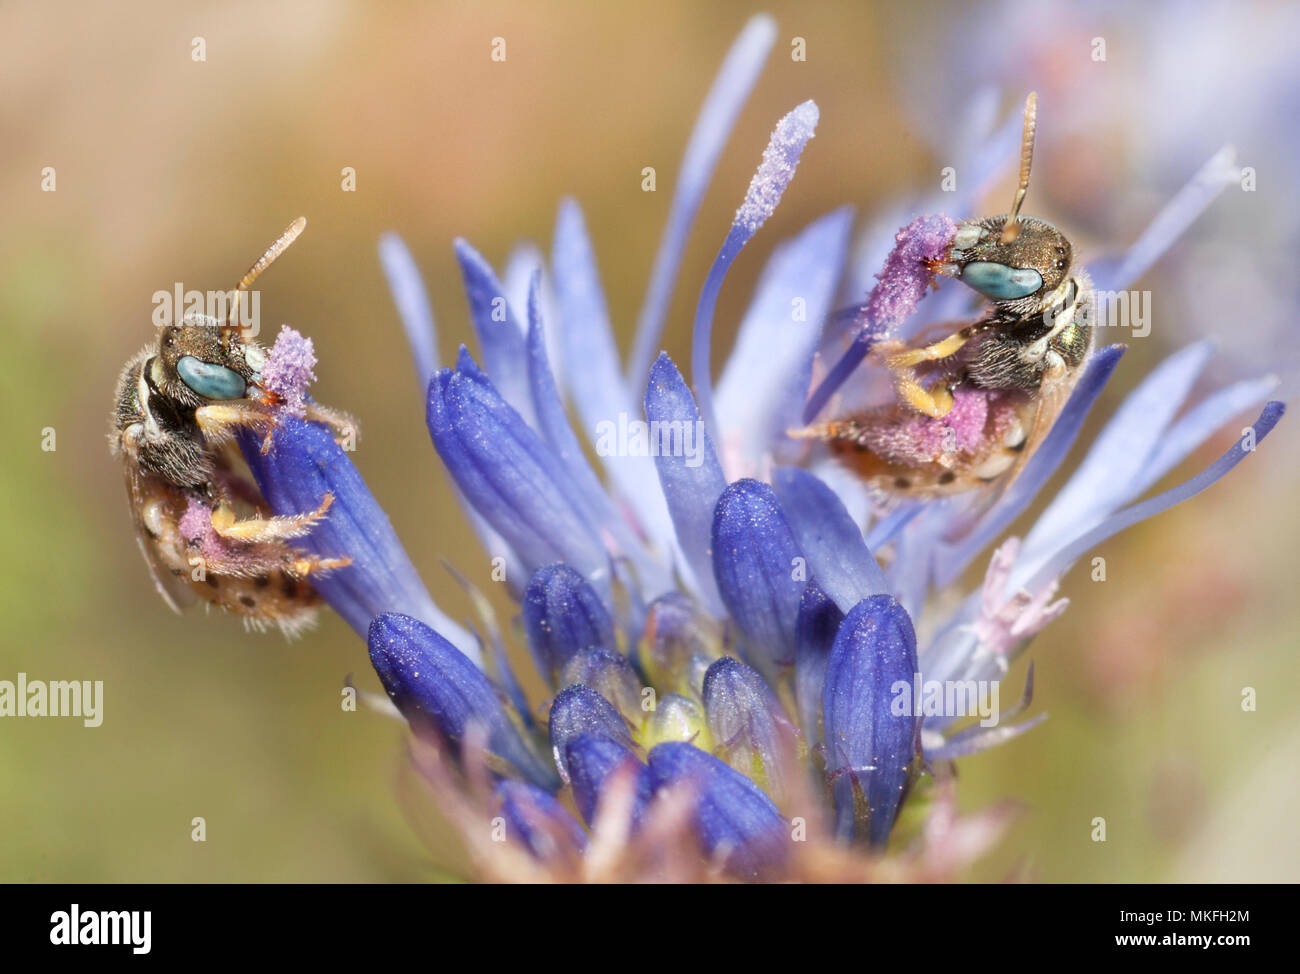 Sweat Bee (Nomioides minutissimus) foraging on jasione, Northern Vosges Regional Nature Park, France - Stock Image